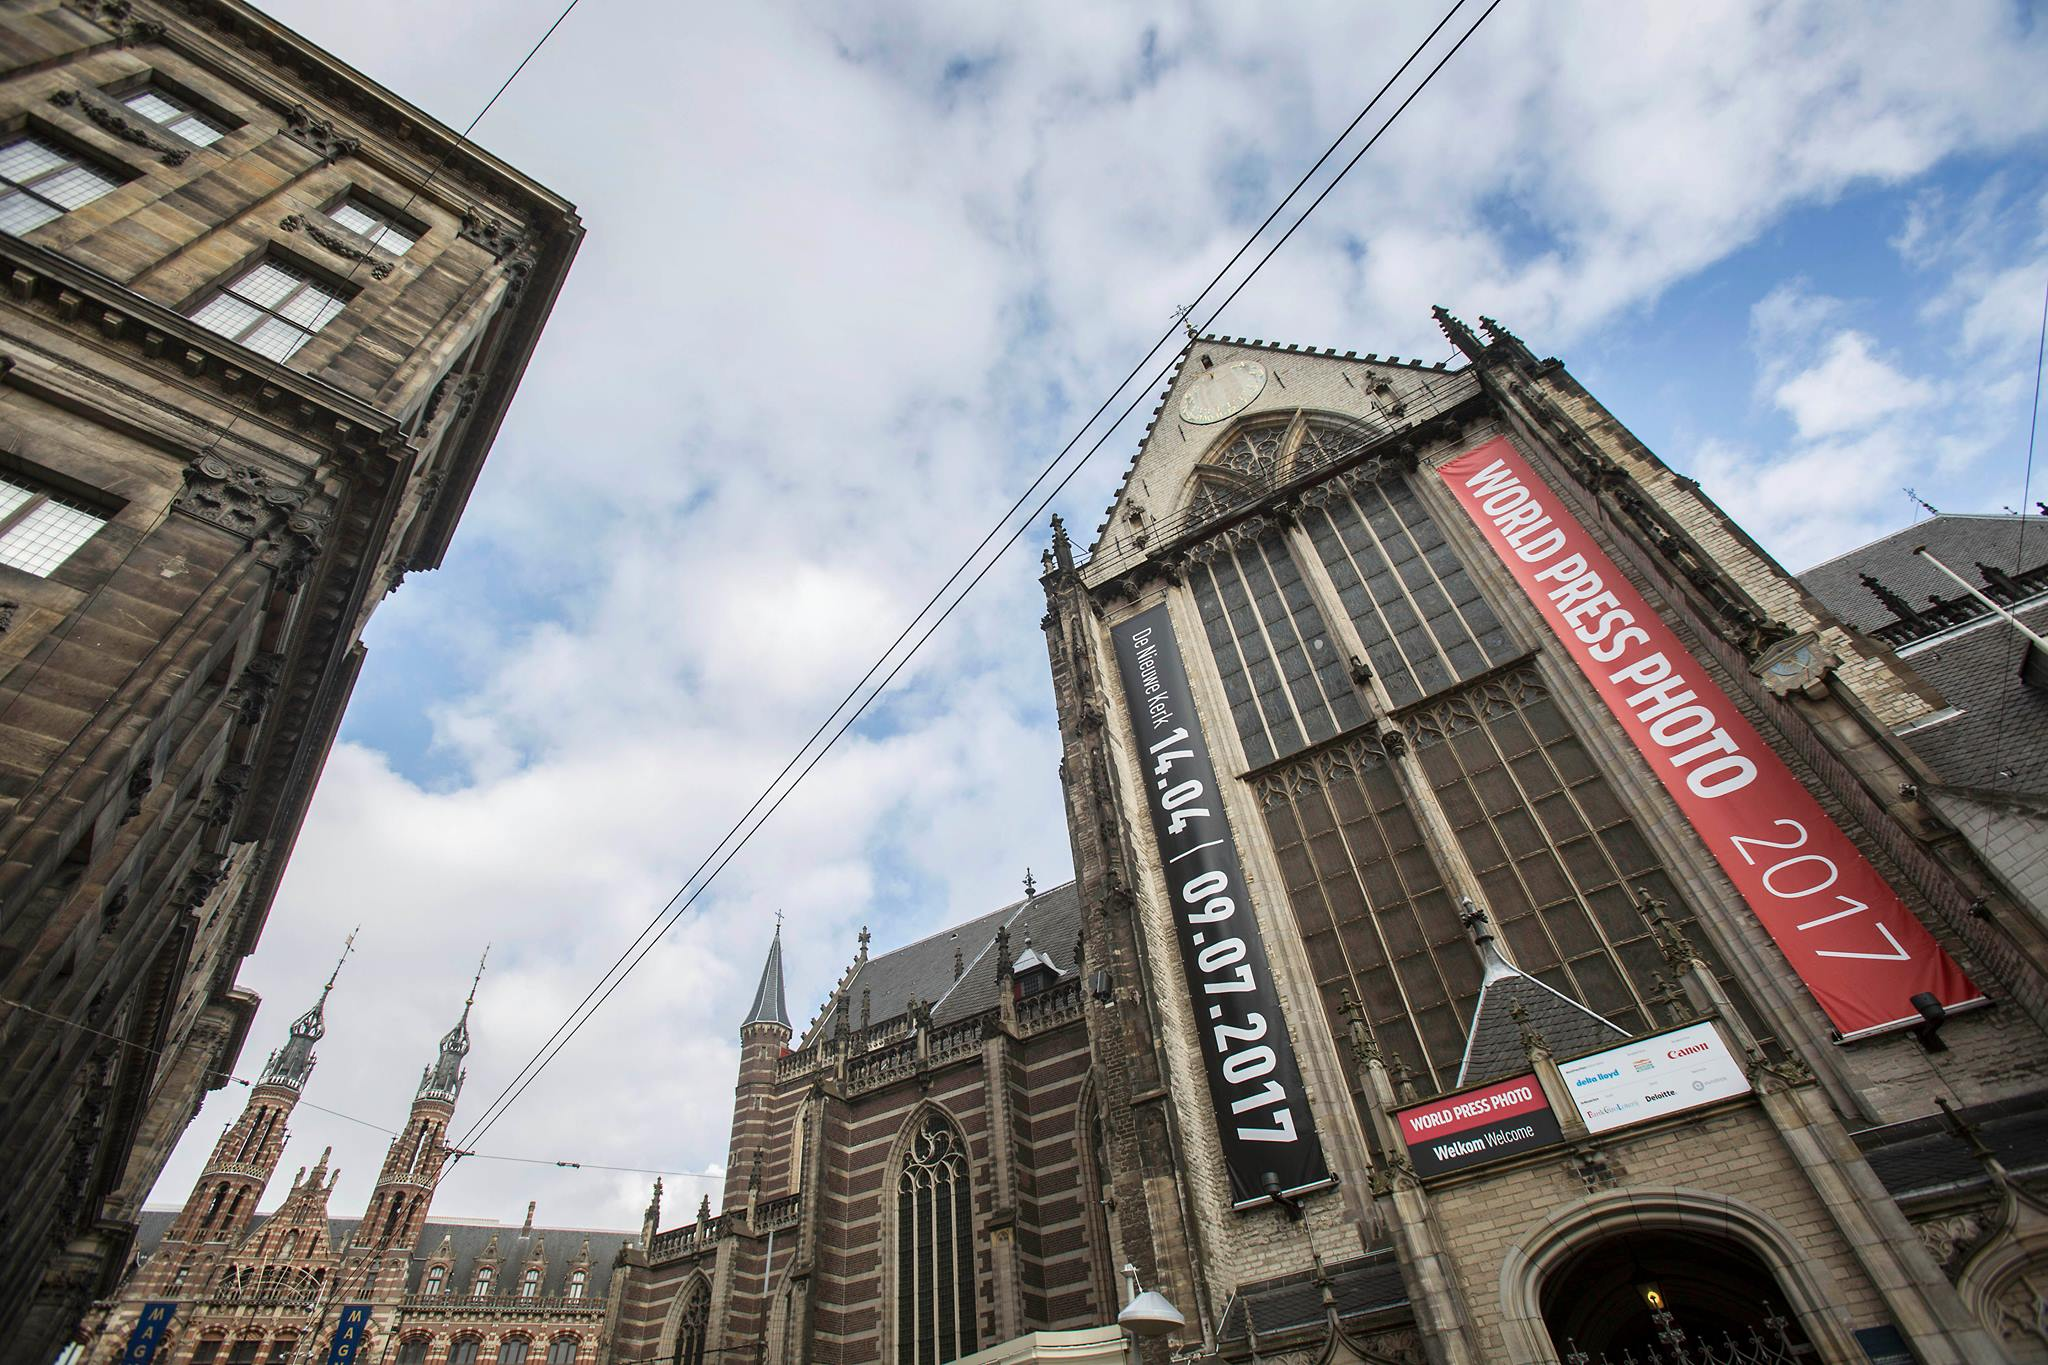 World Press Photo Amsterdam - Daily Cappuccino - Lifestyle Blog